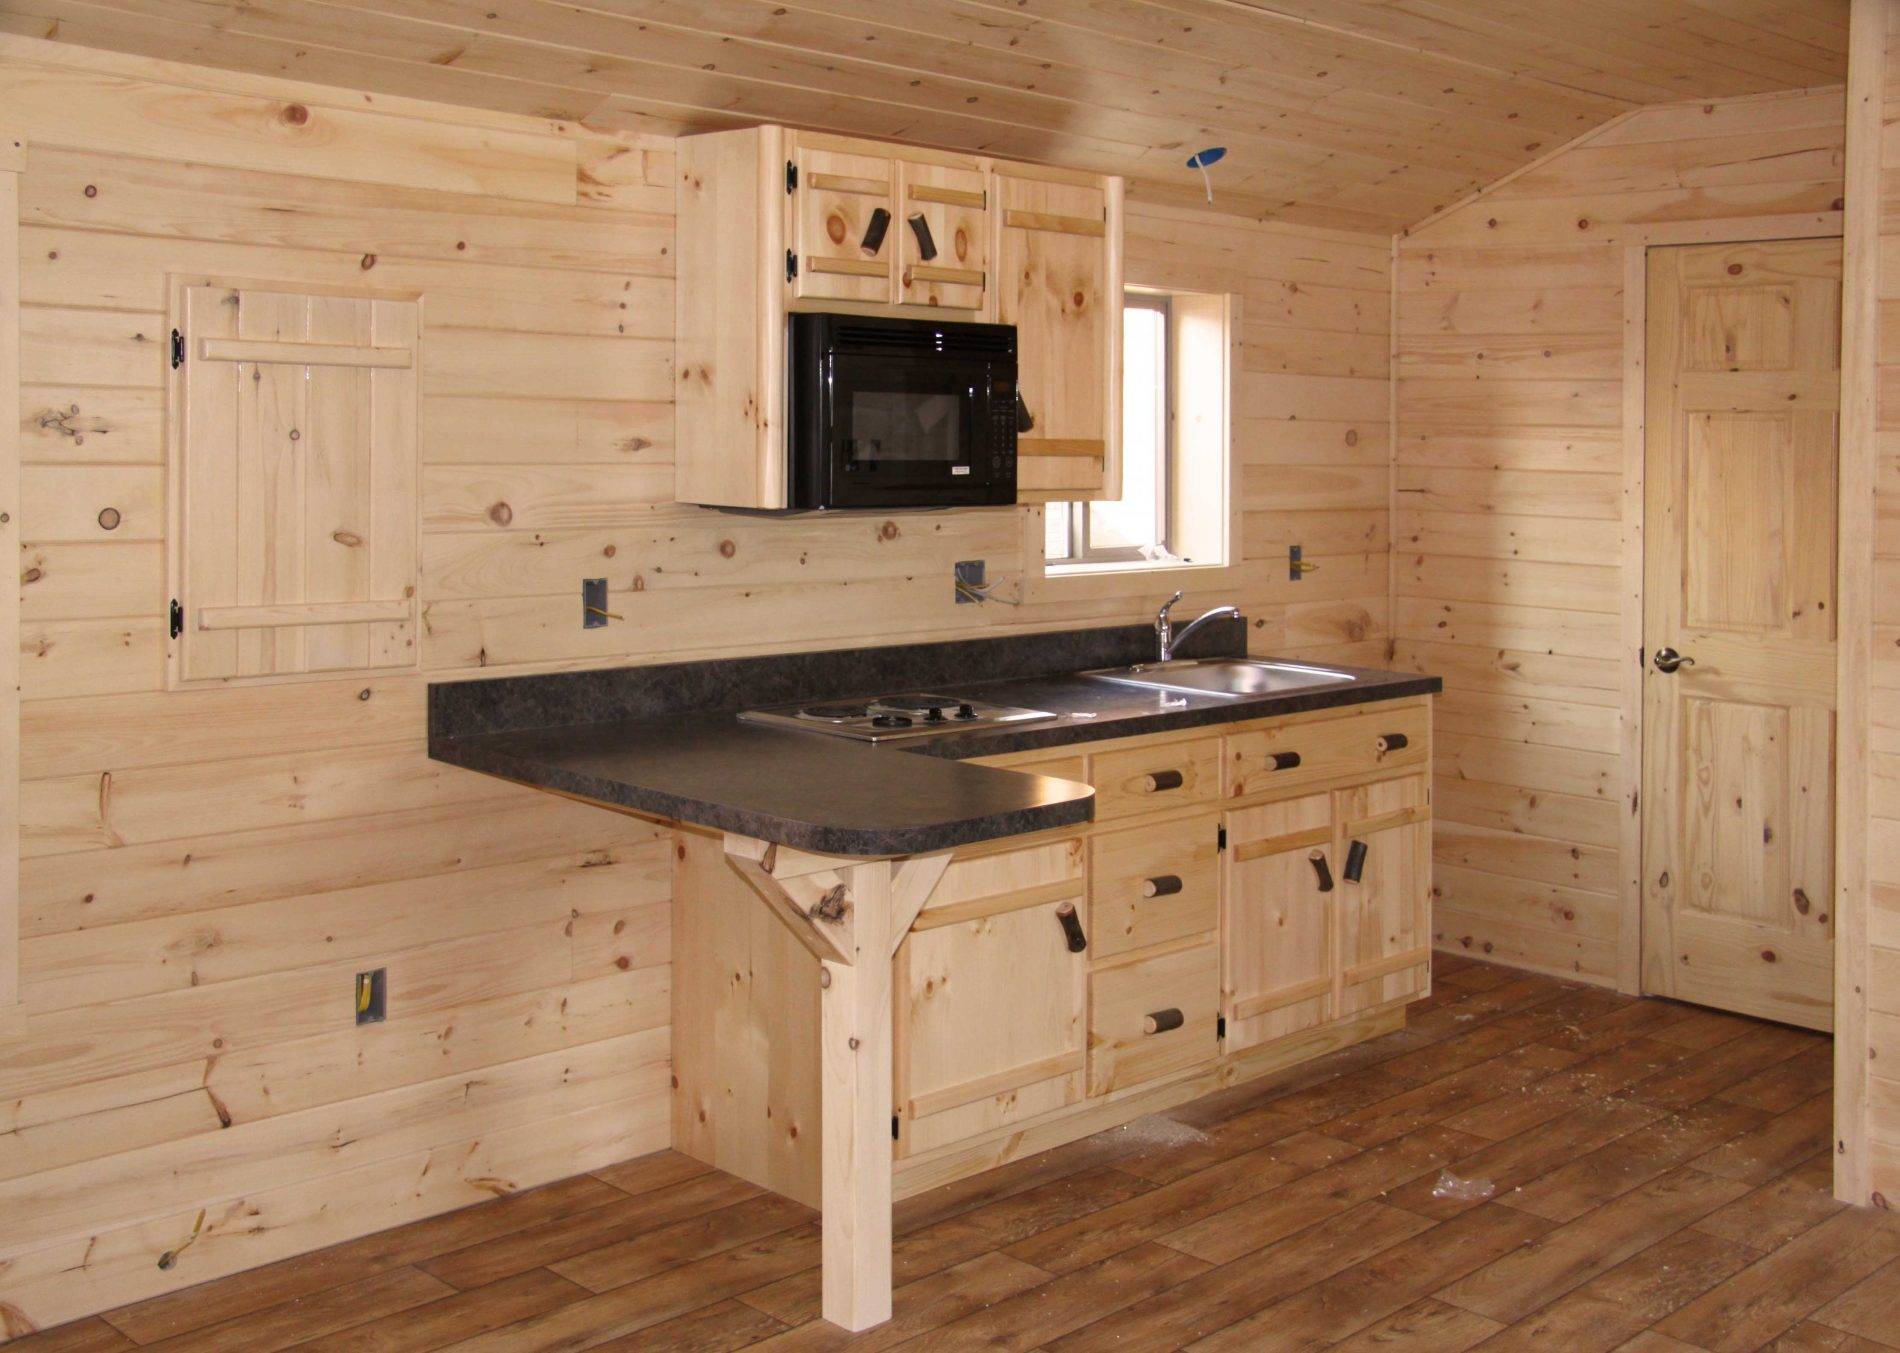 Settler Cabin Hunting Lodge Plans Small Cabin Plans Zook Cabins